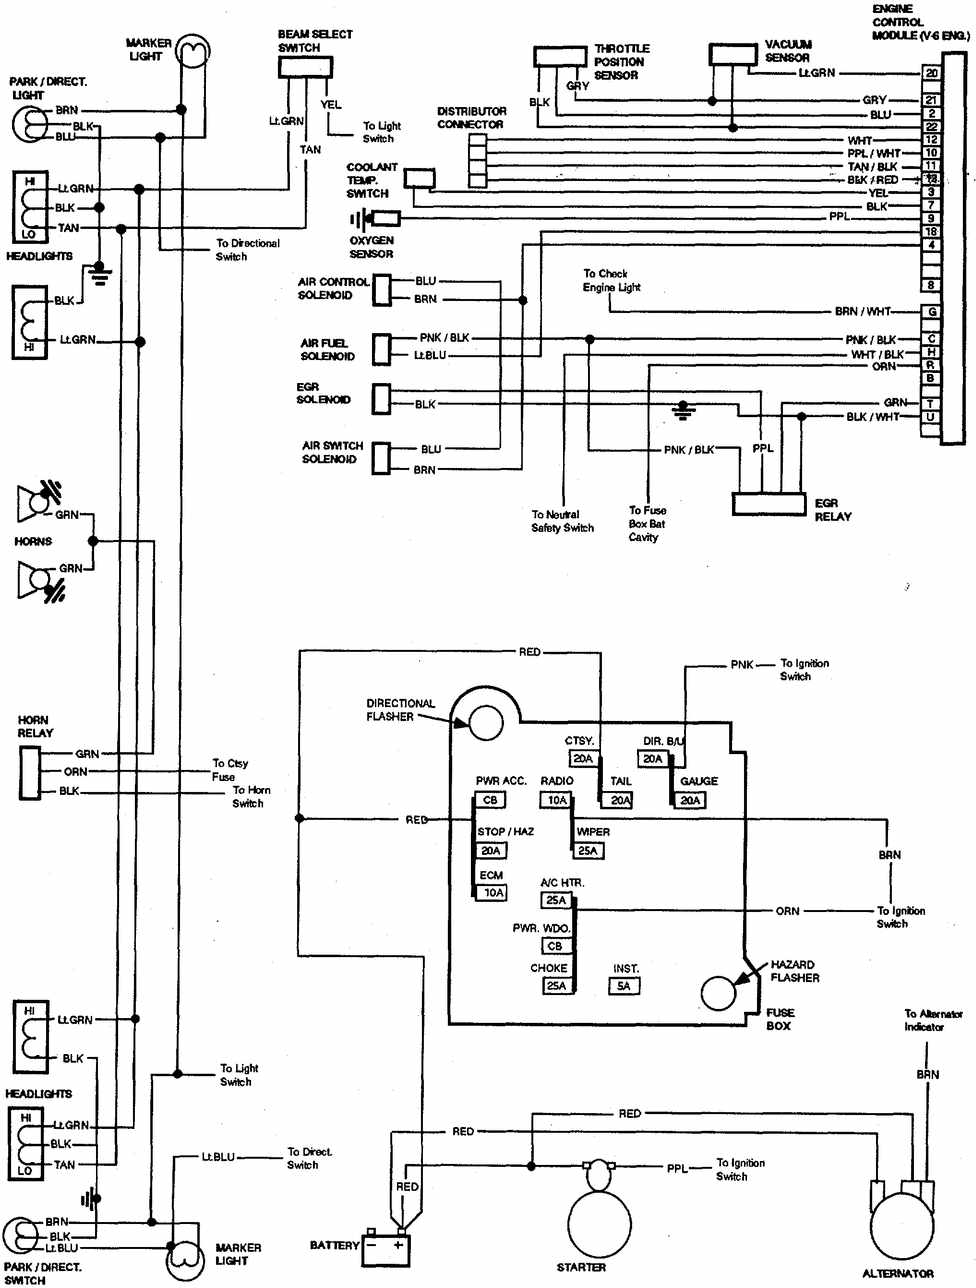 1986 chevy truck ignition wiring diagram